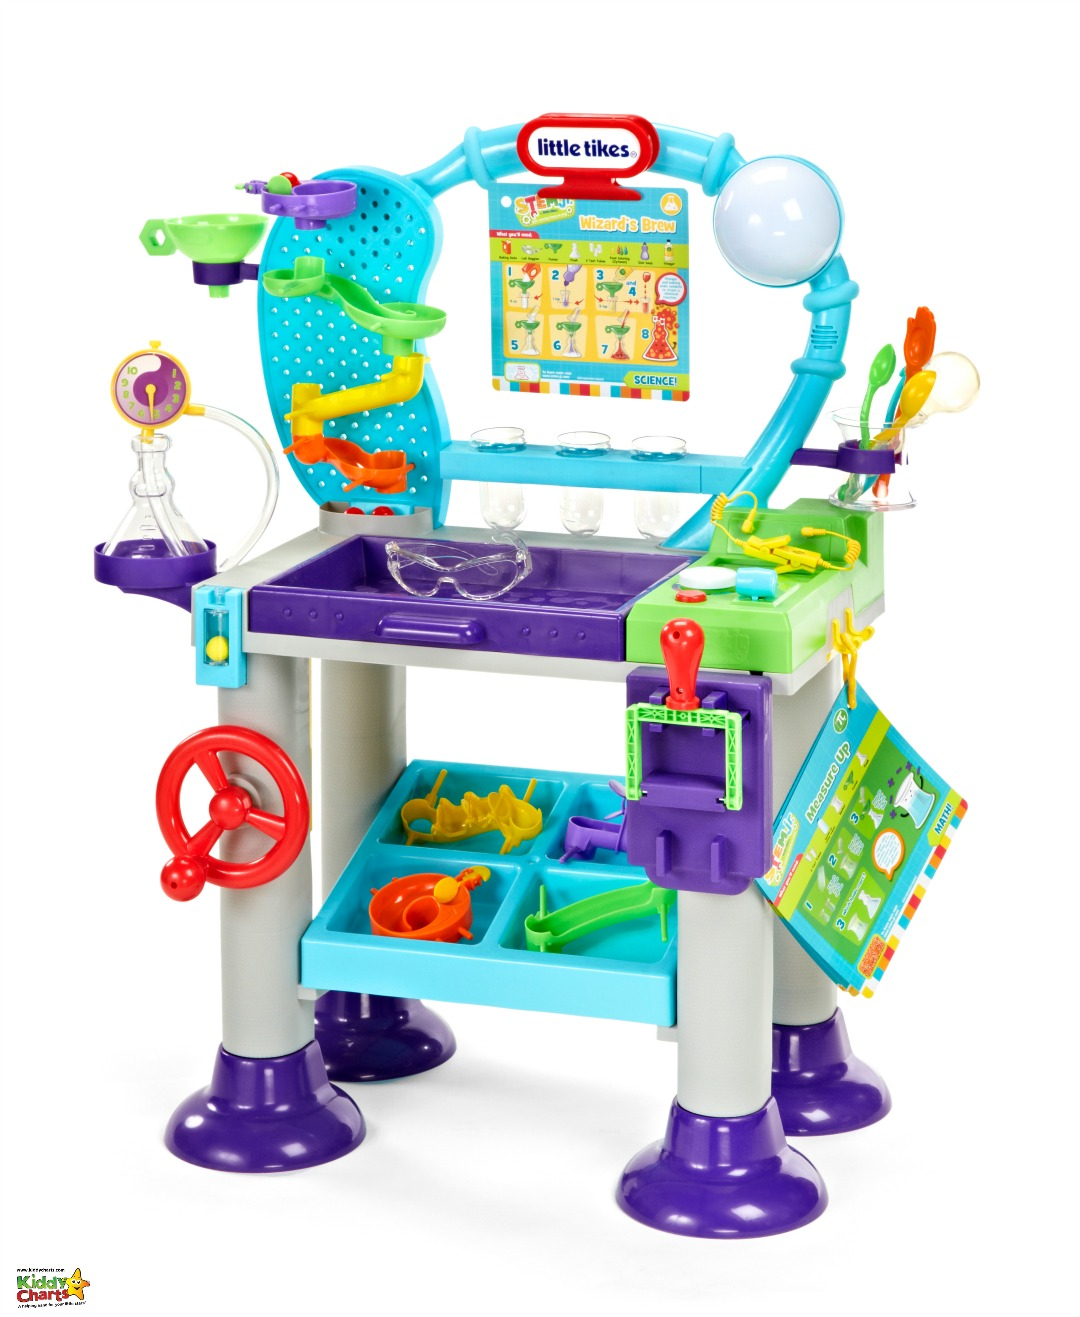 We've got a fantastic back to school STEM prize to give away - a Wonder Lab from Little Tikes. Why not pop along and see if you can win?